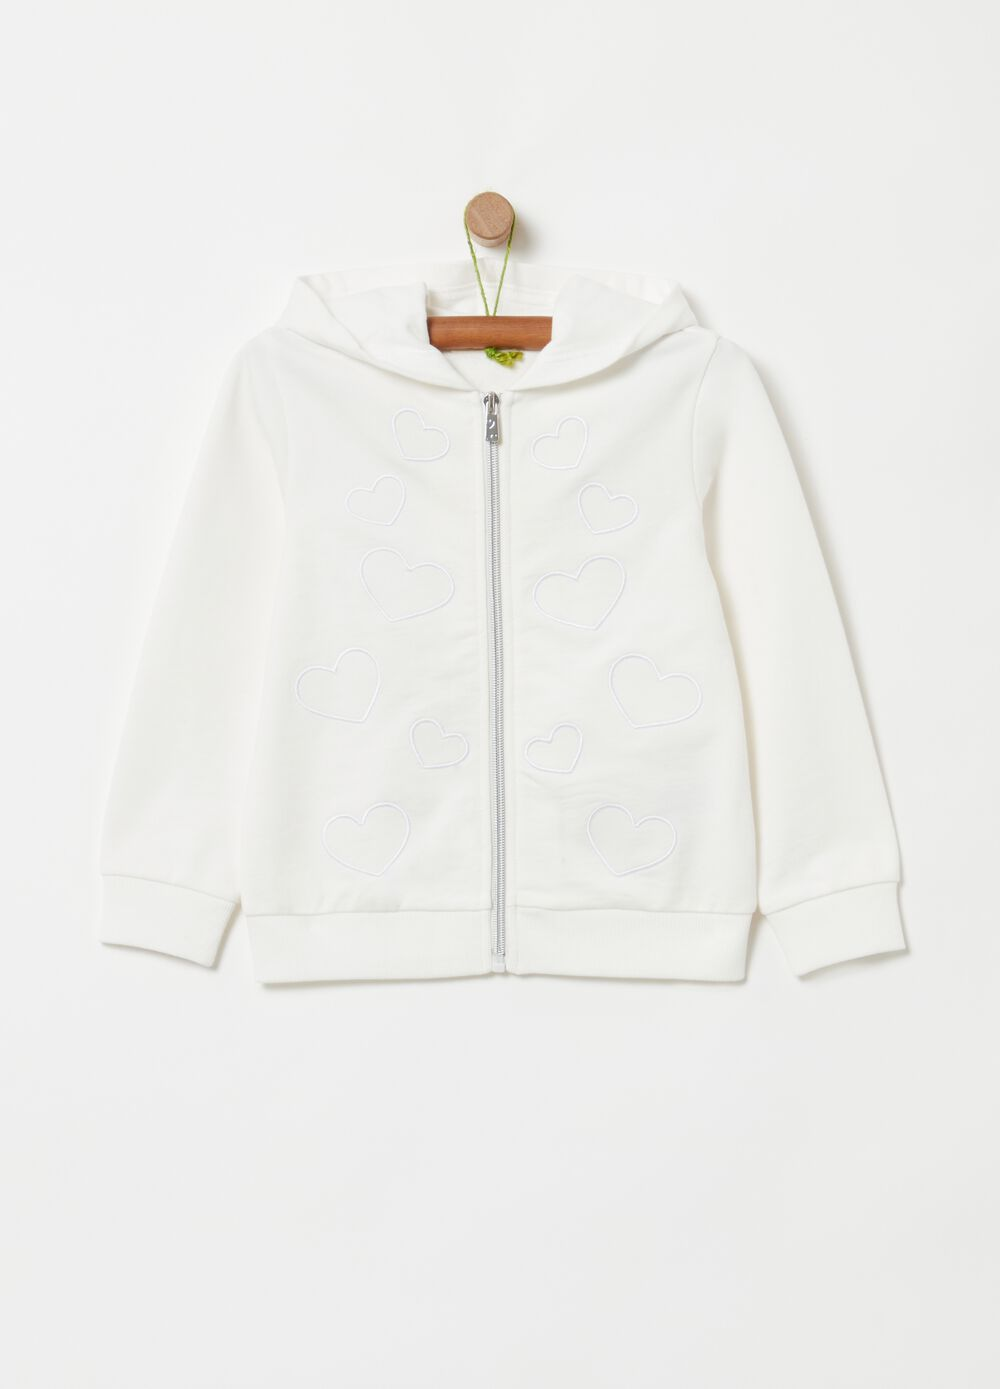 100% cotton sweatshirt with embroidery